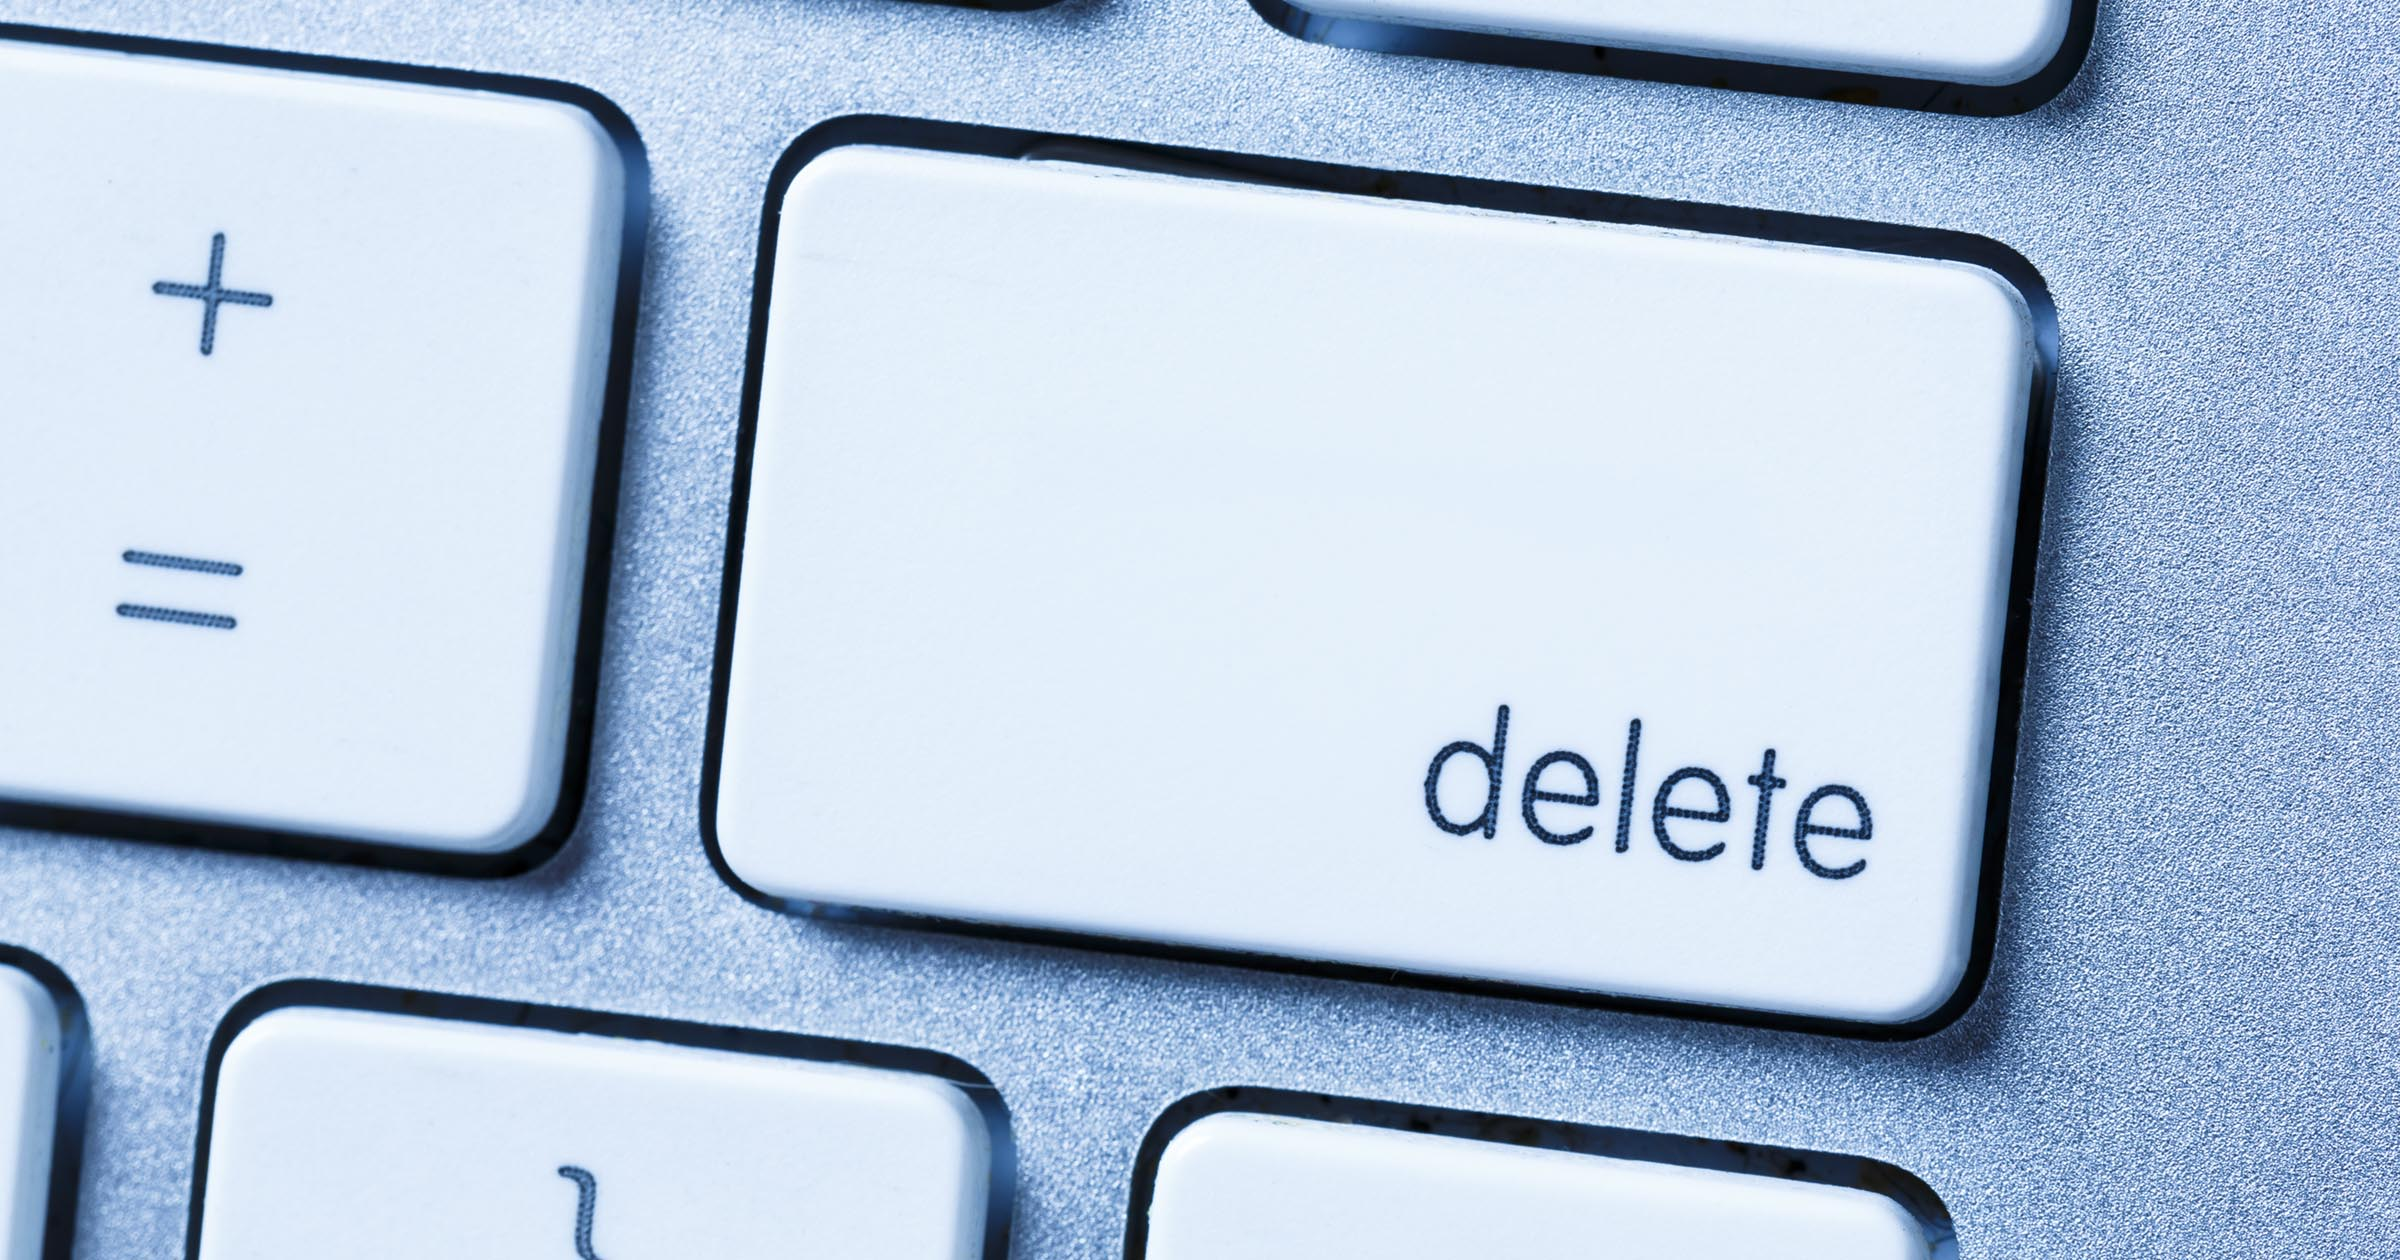 How Does Secure Delete Work? - Ask Leo!